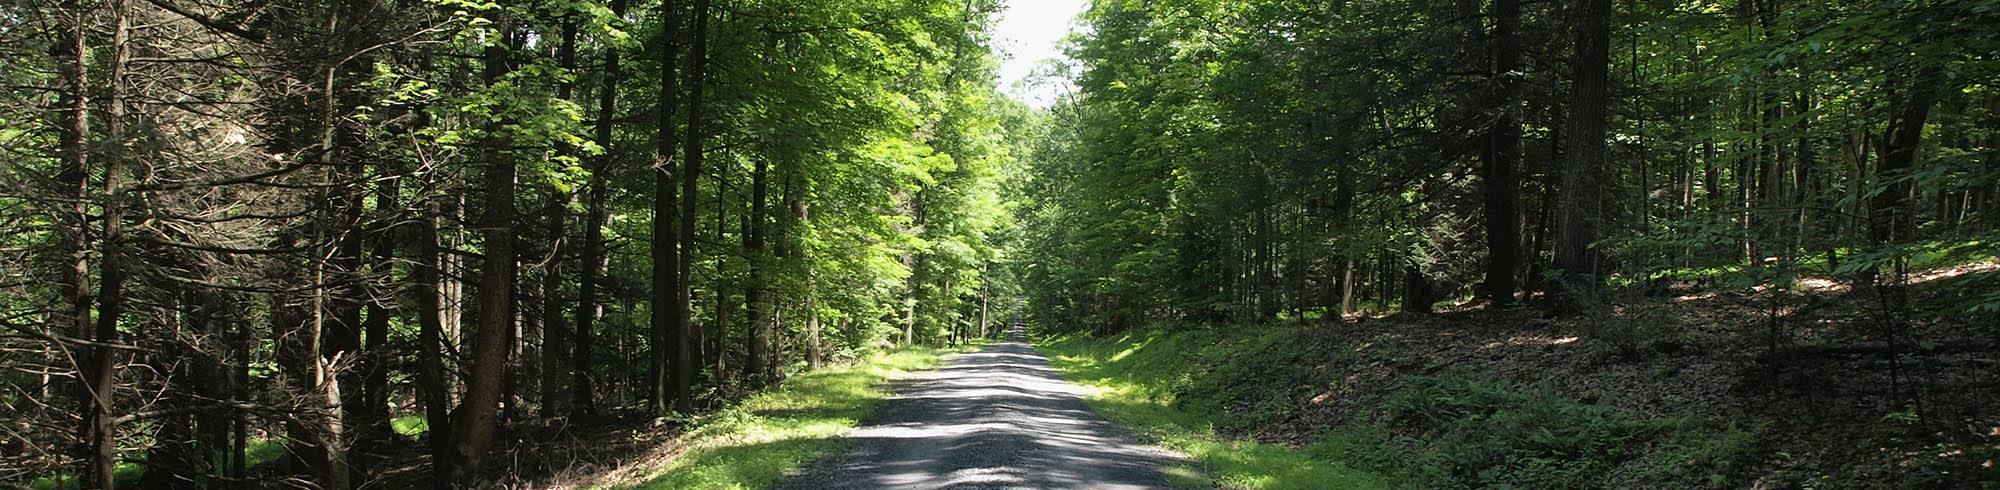 Country road in the northeast lined with trees